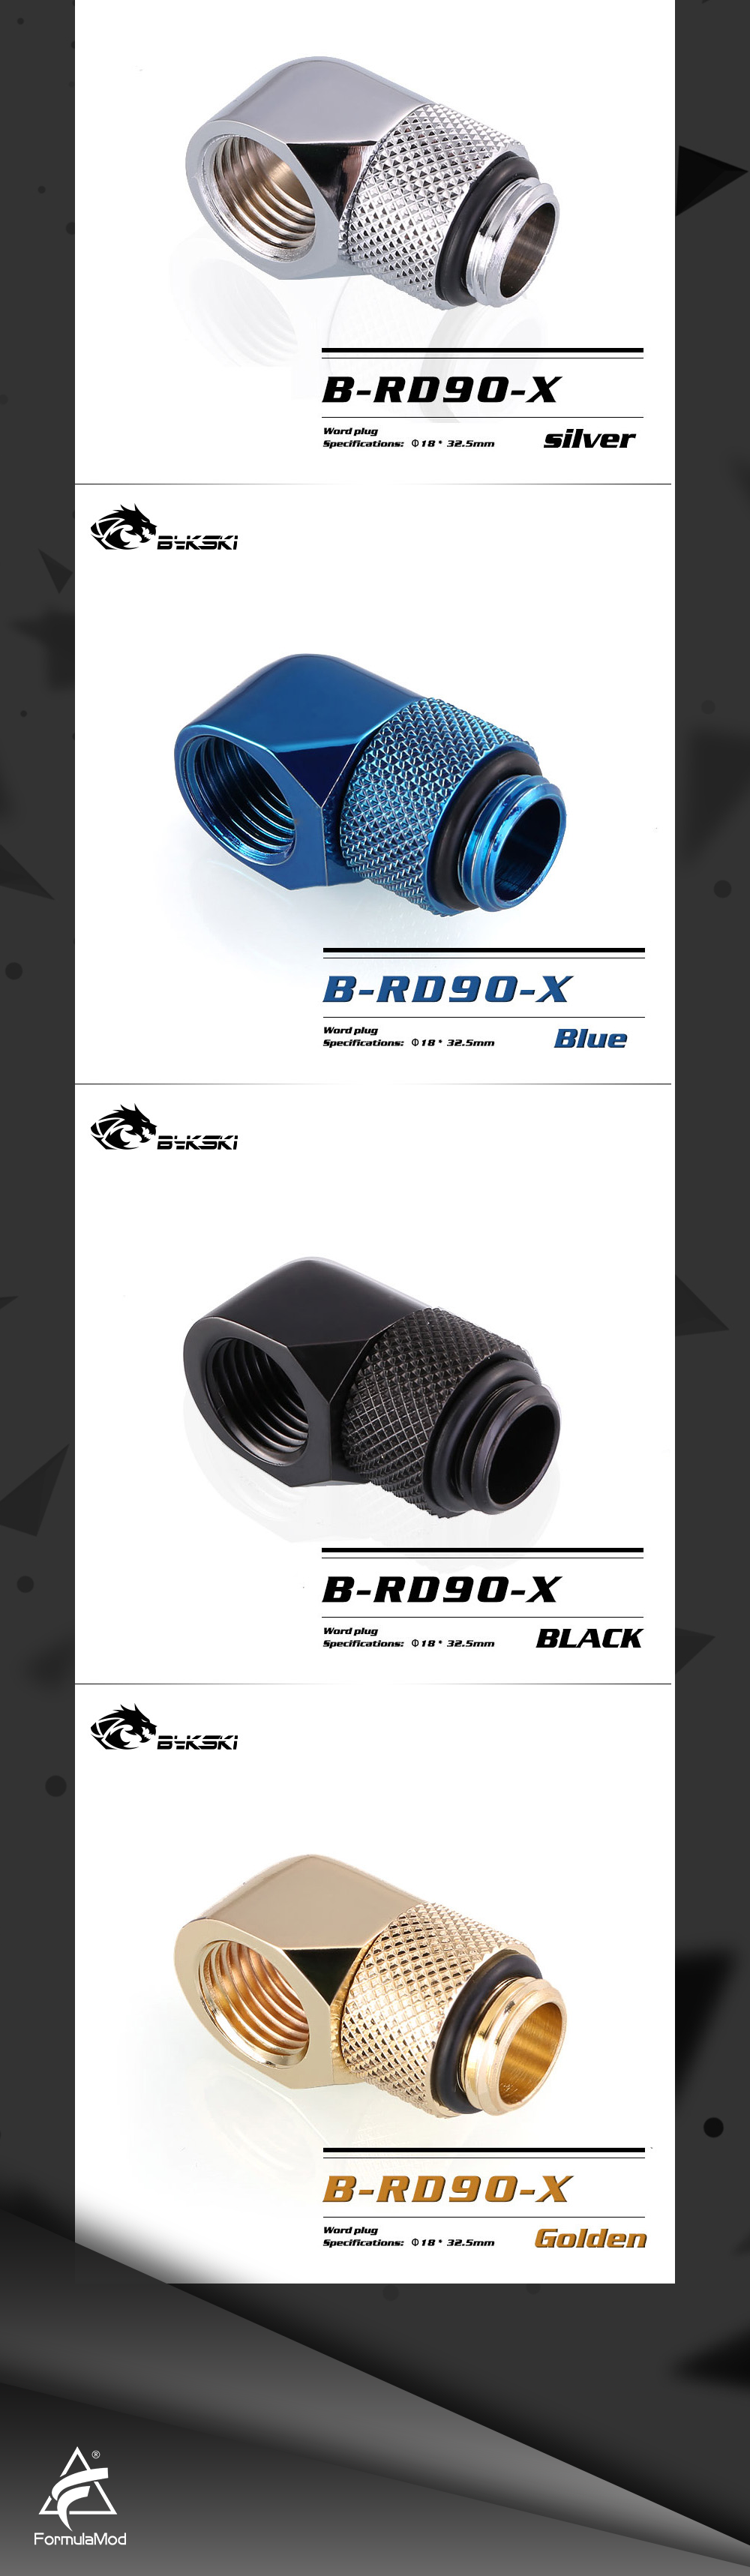 Bykski B-RD90-X, 90 Degree Fittings With Rotation, Boutique Multiple Colour G1/4'' Water Cooling Commonly Used Fittings